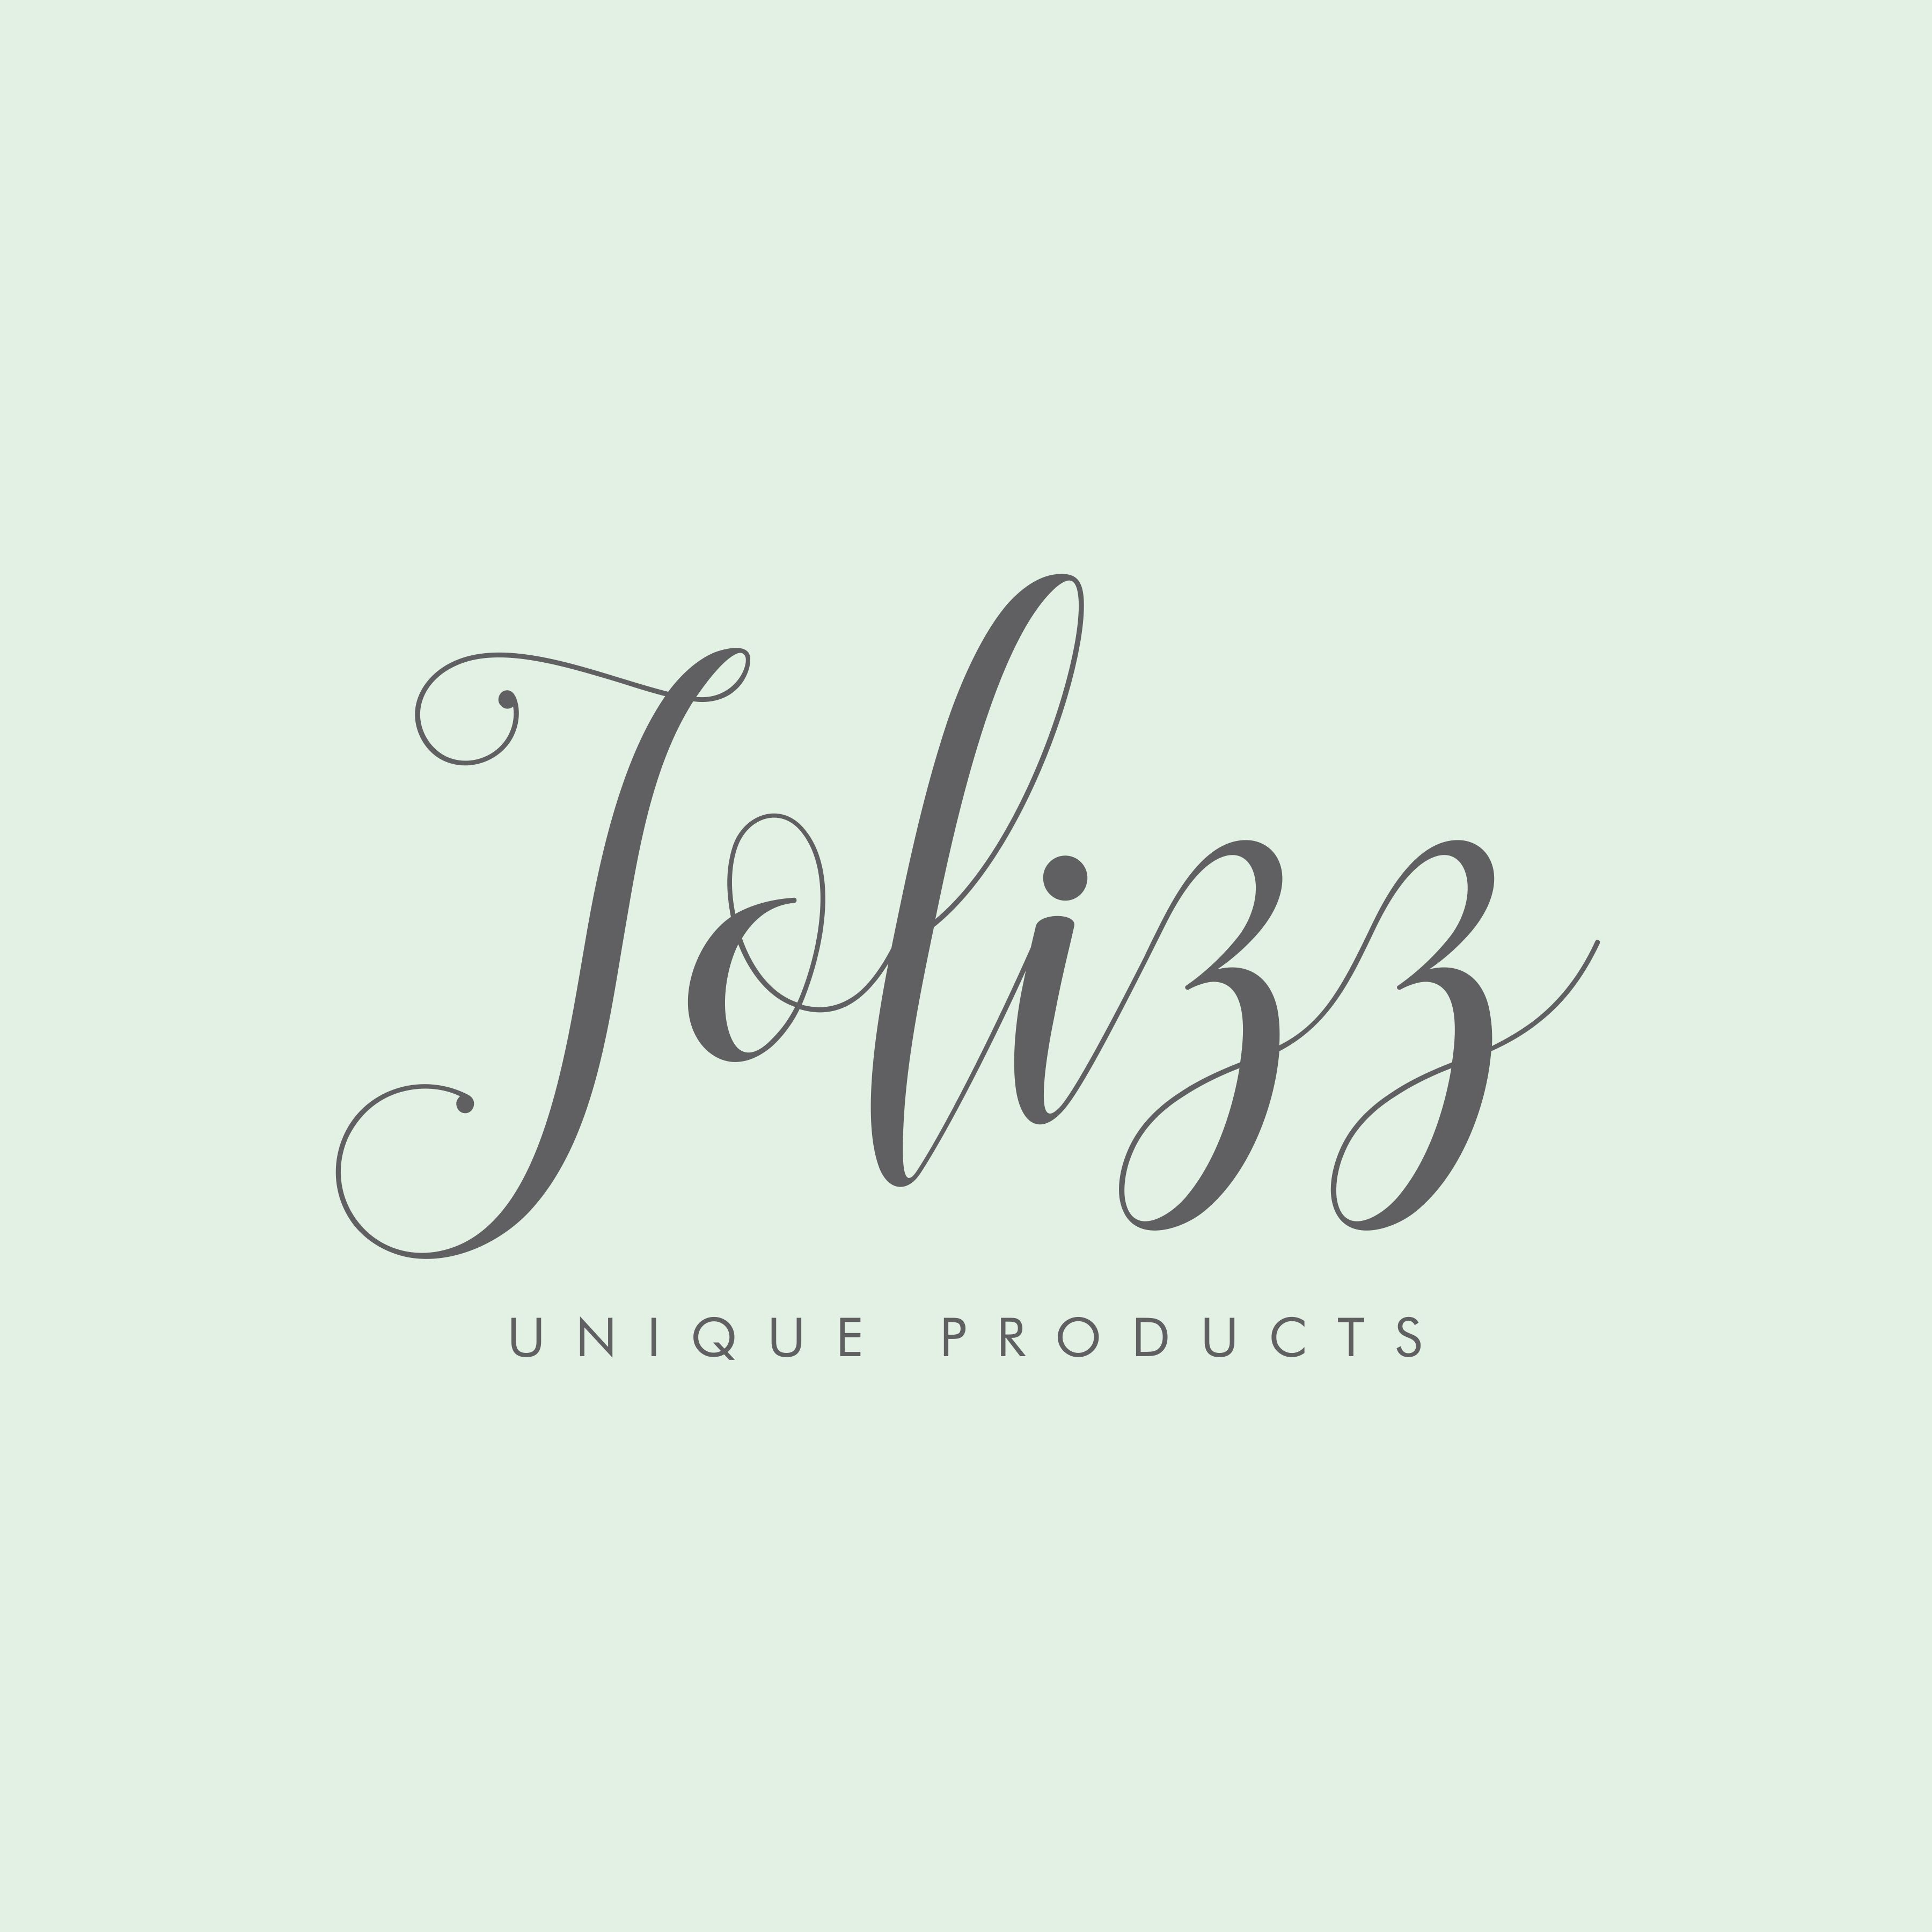 Logos & Packages designs